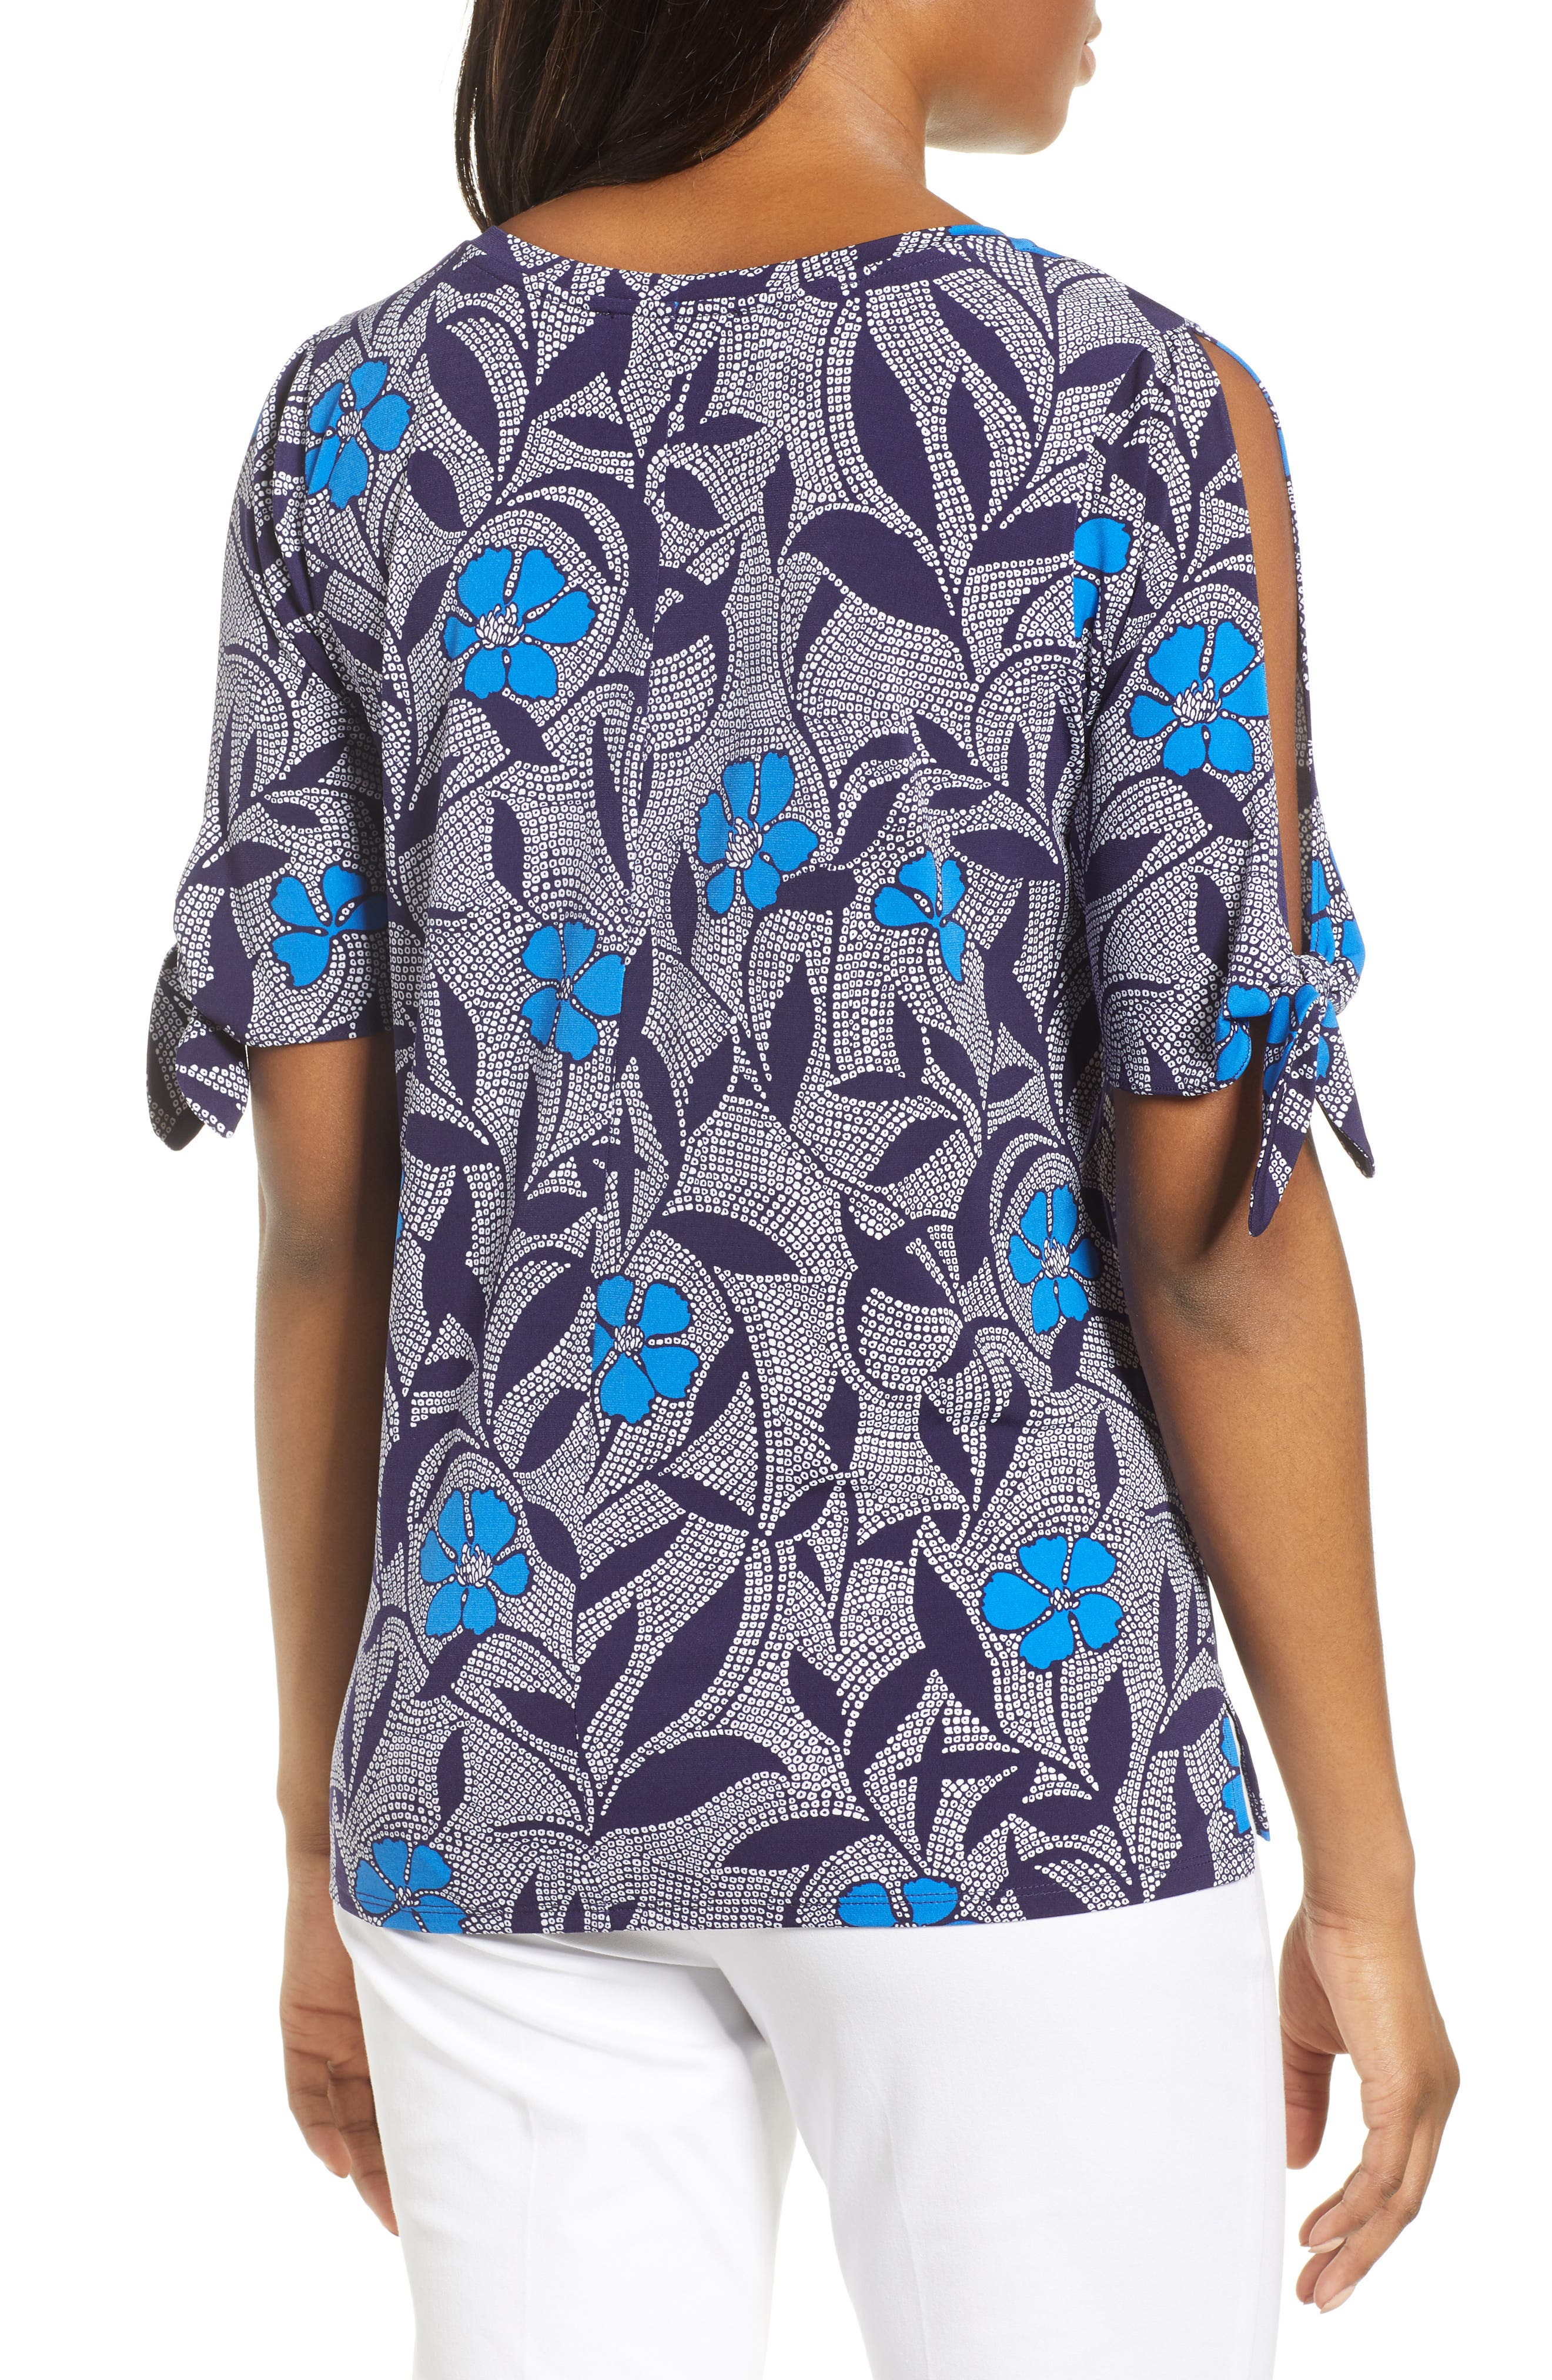 Pacific Bloom Top,                             Alternate thumbnail 2, color,                             Evening Navy